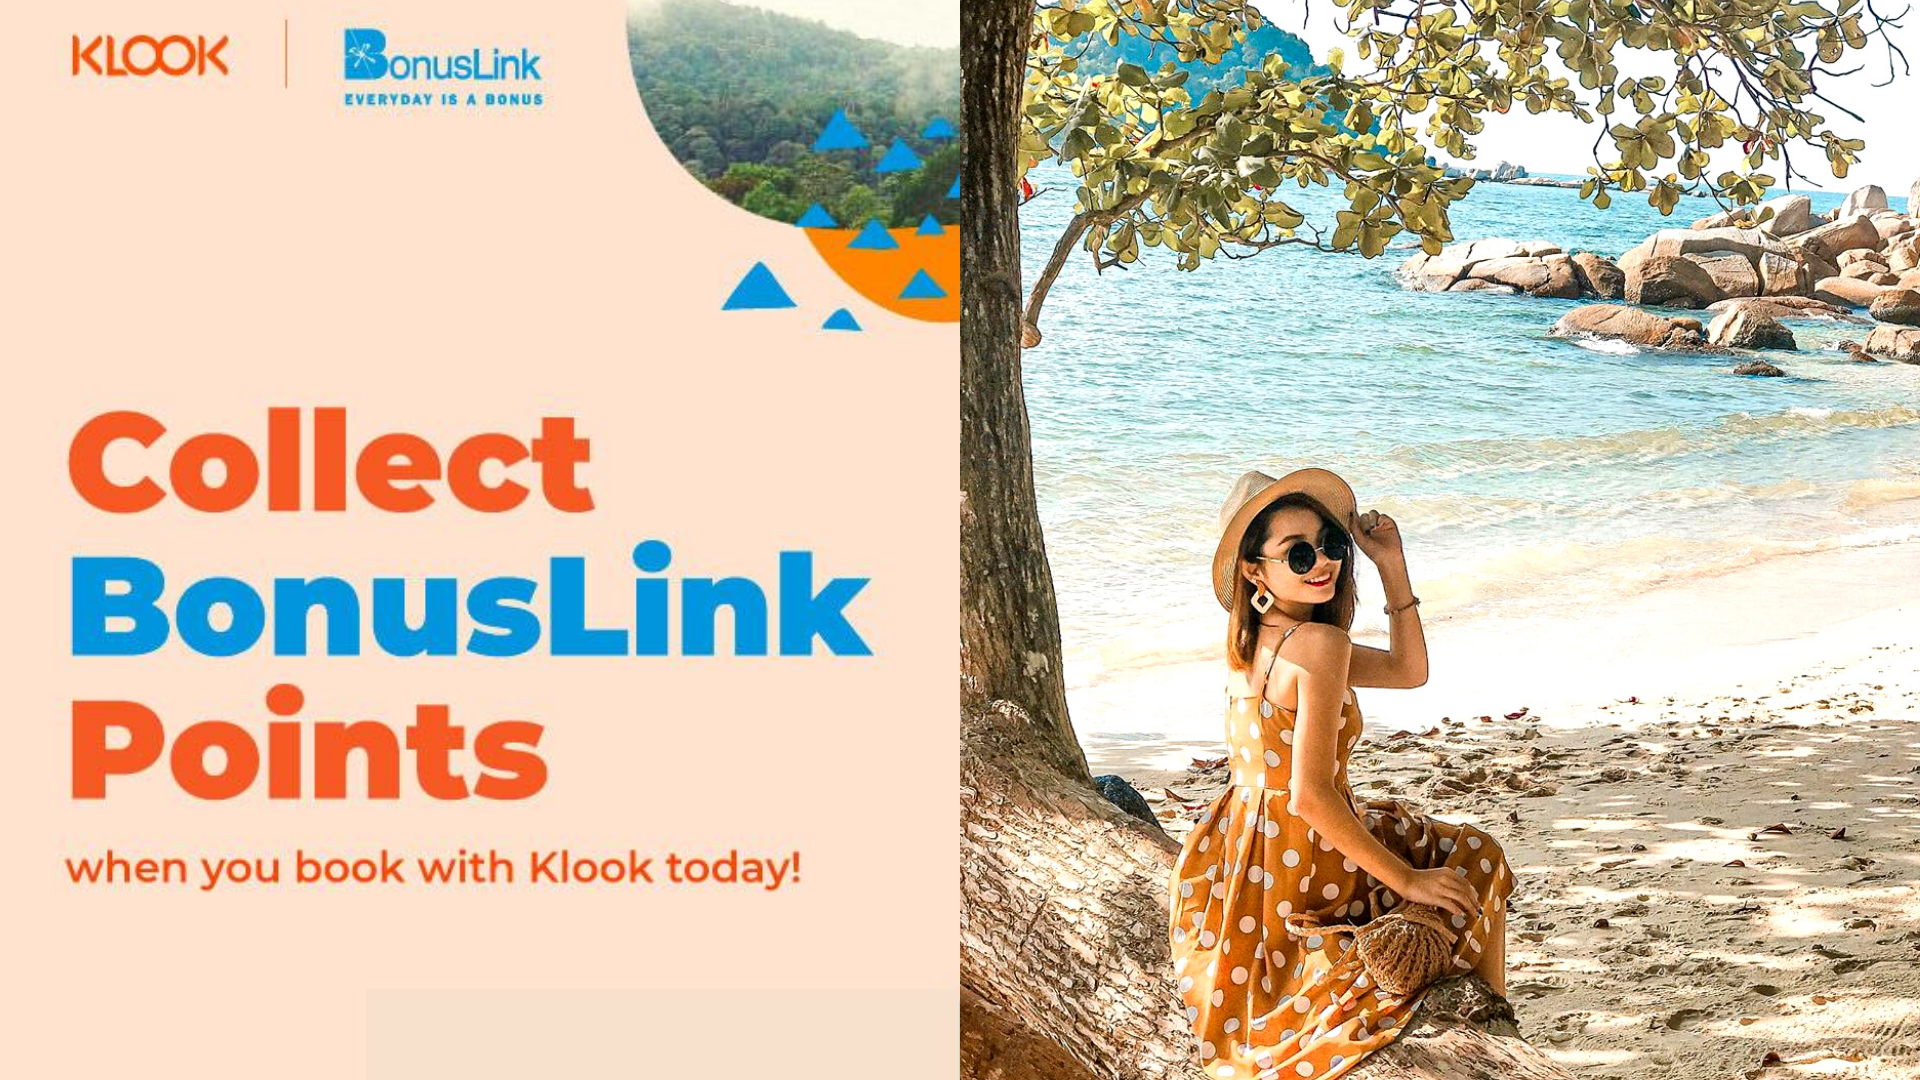 Get Rewarded While You Have Fun: Collect Up To 3 BonusLink Points With Every RM1 Spent On Klook!